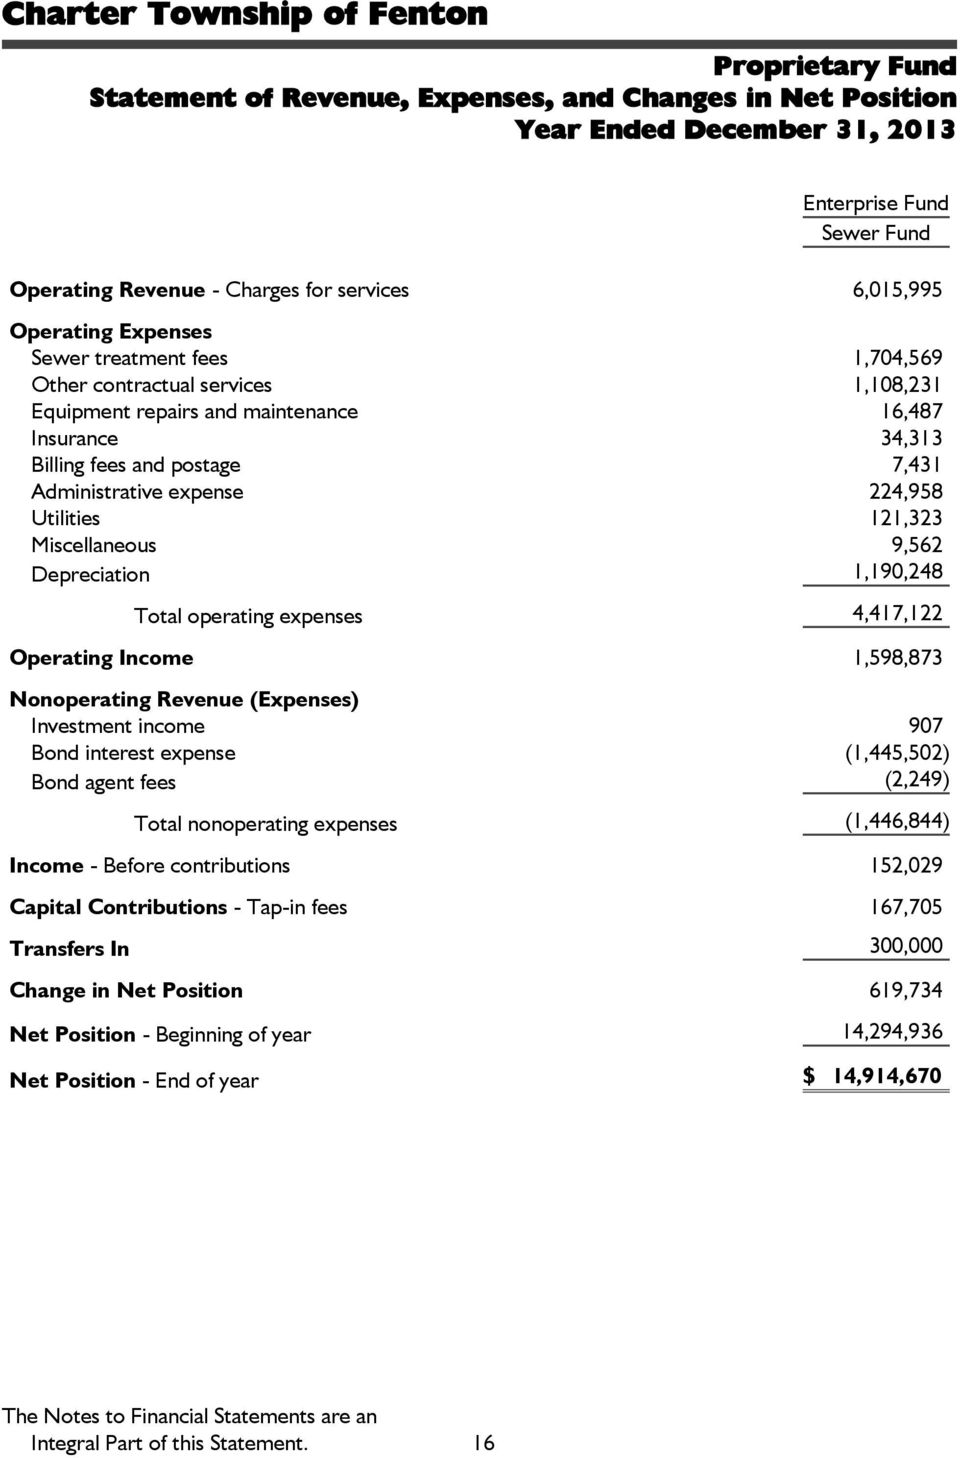 Utilities 121,323 Miscellaneous 9,562 Depreciation 1,190,248 Total operating expenses 4,417,122 Operating Income 1,598,873 Nonoperating Revenue (Expenses) Investment income 907 Bond interest expense